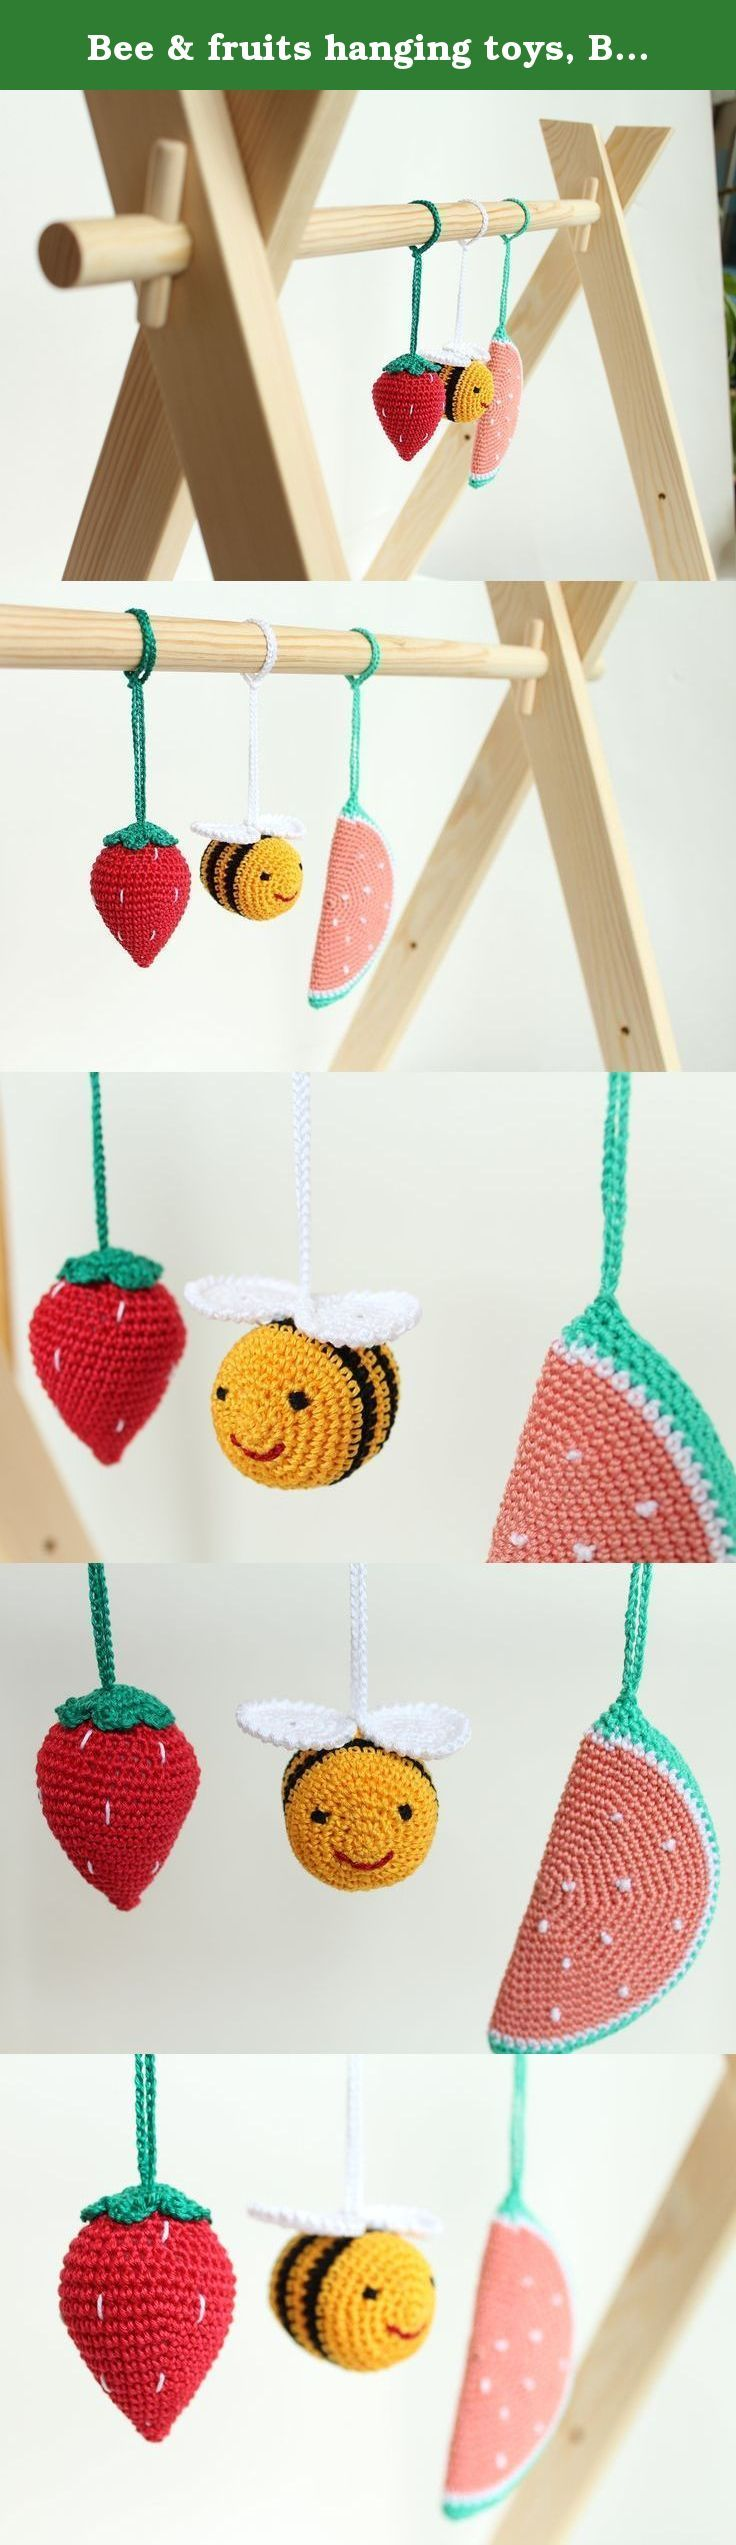 Best crib toys your baby - Bee Fruits Hanging Toys Baby Play Gym Toy Crib Toy Baby Rattle